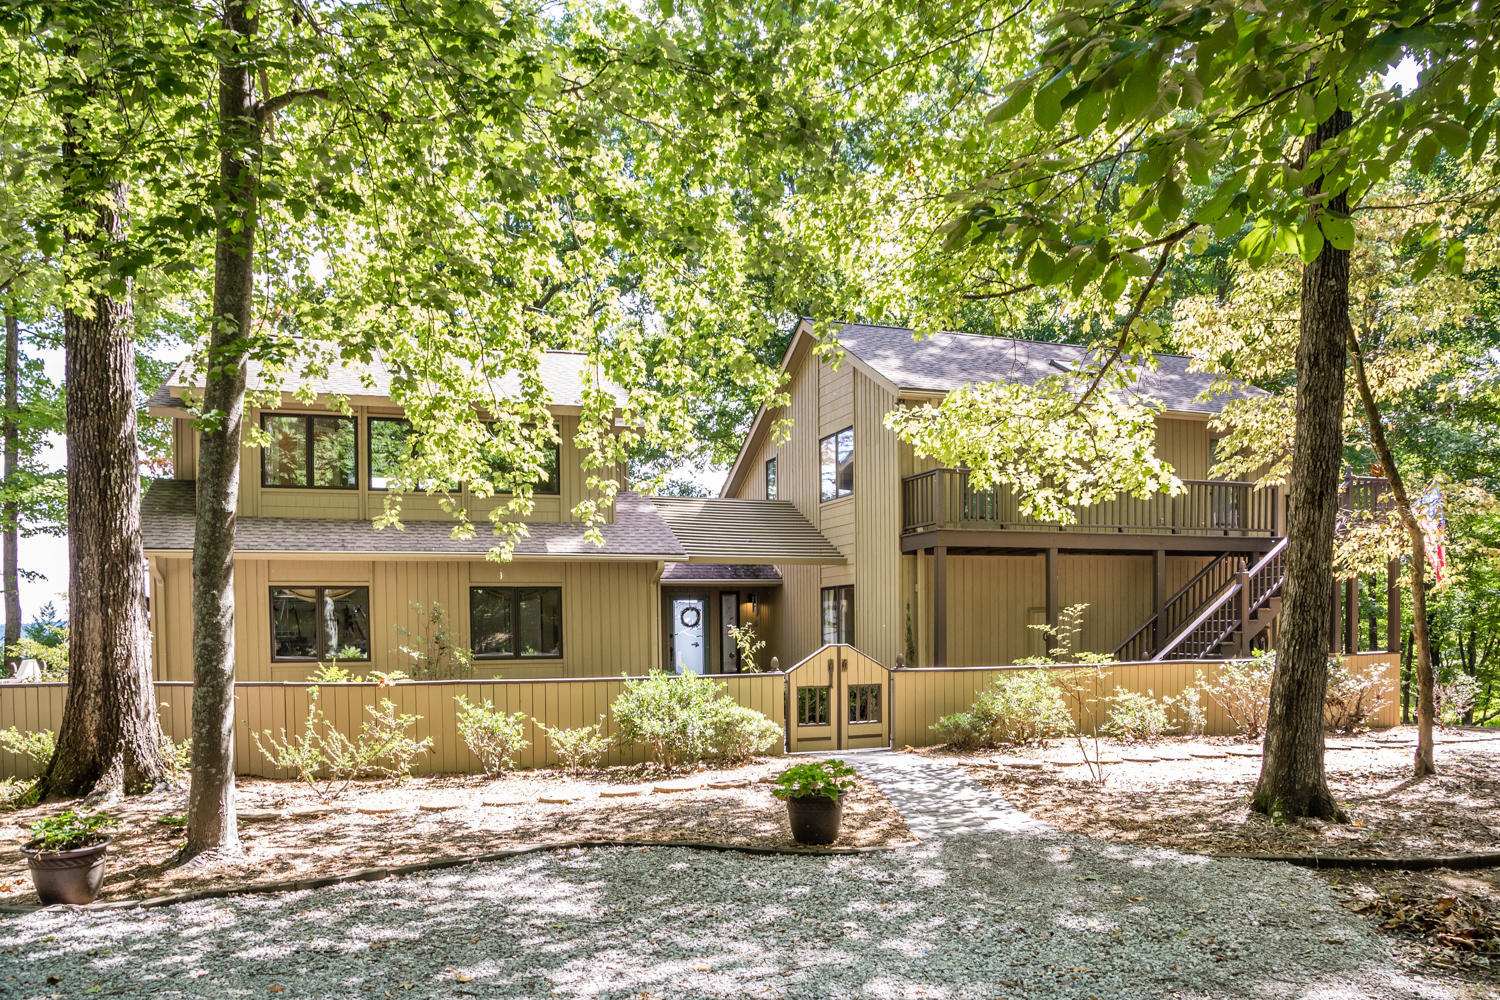 Sewanee Tn Real Estate For Sale Property Search Results Crye Leike Com Page 1